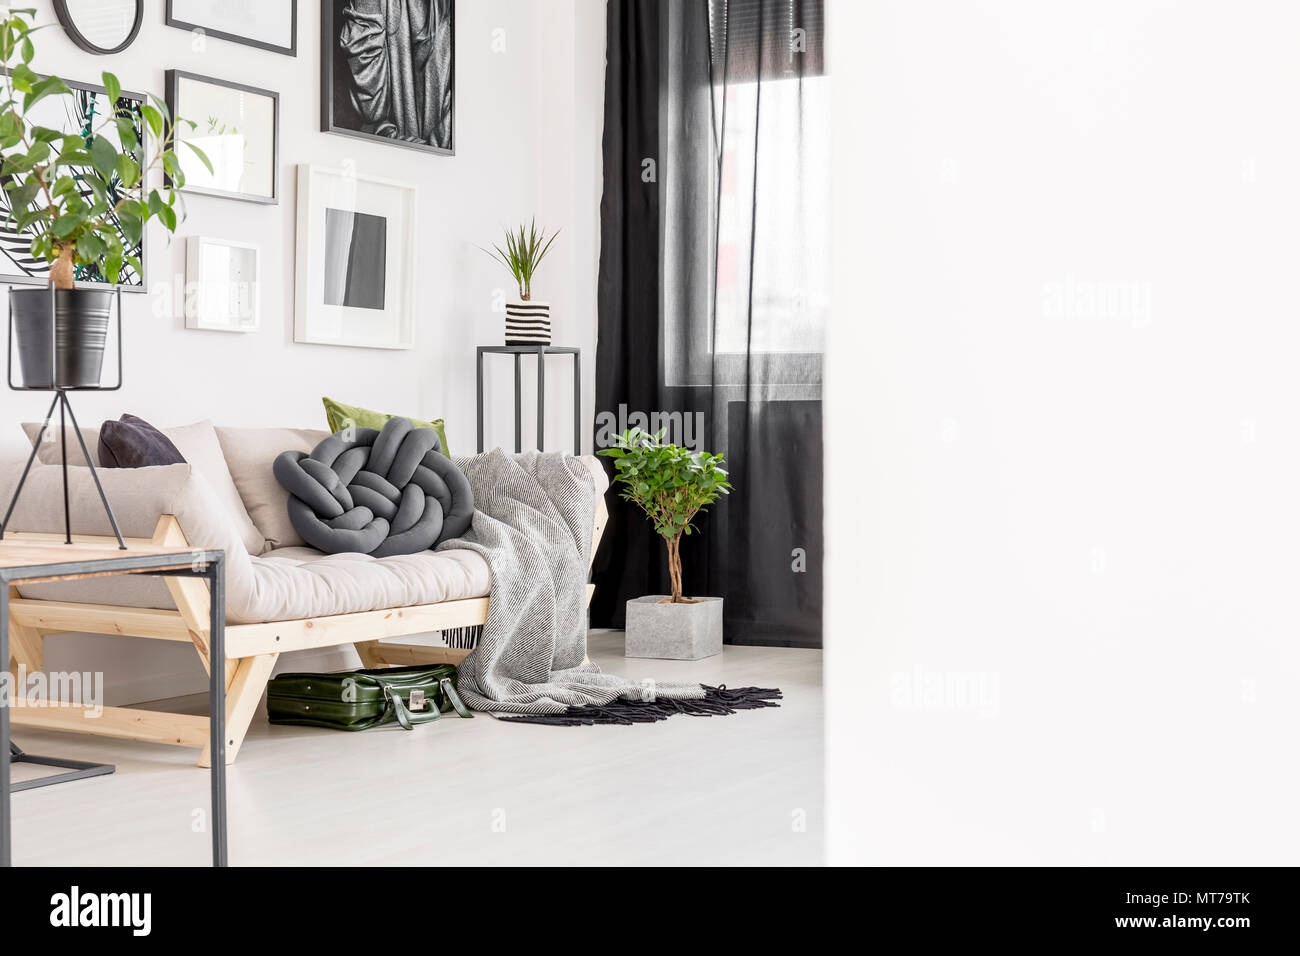 Beige futon in bright living room interior with plant, posters and ...